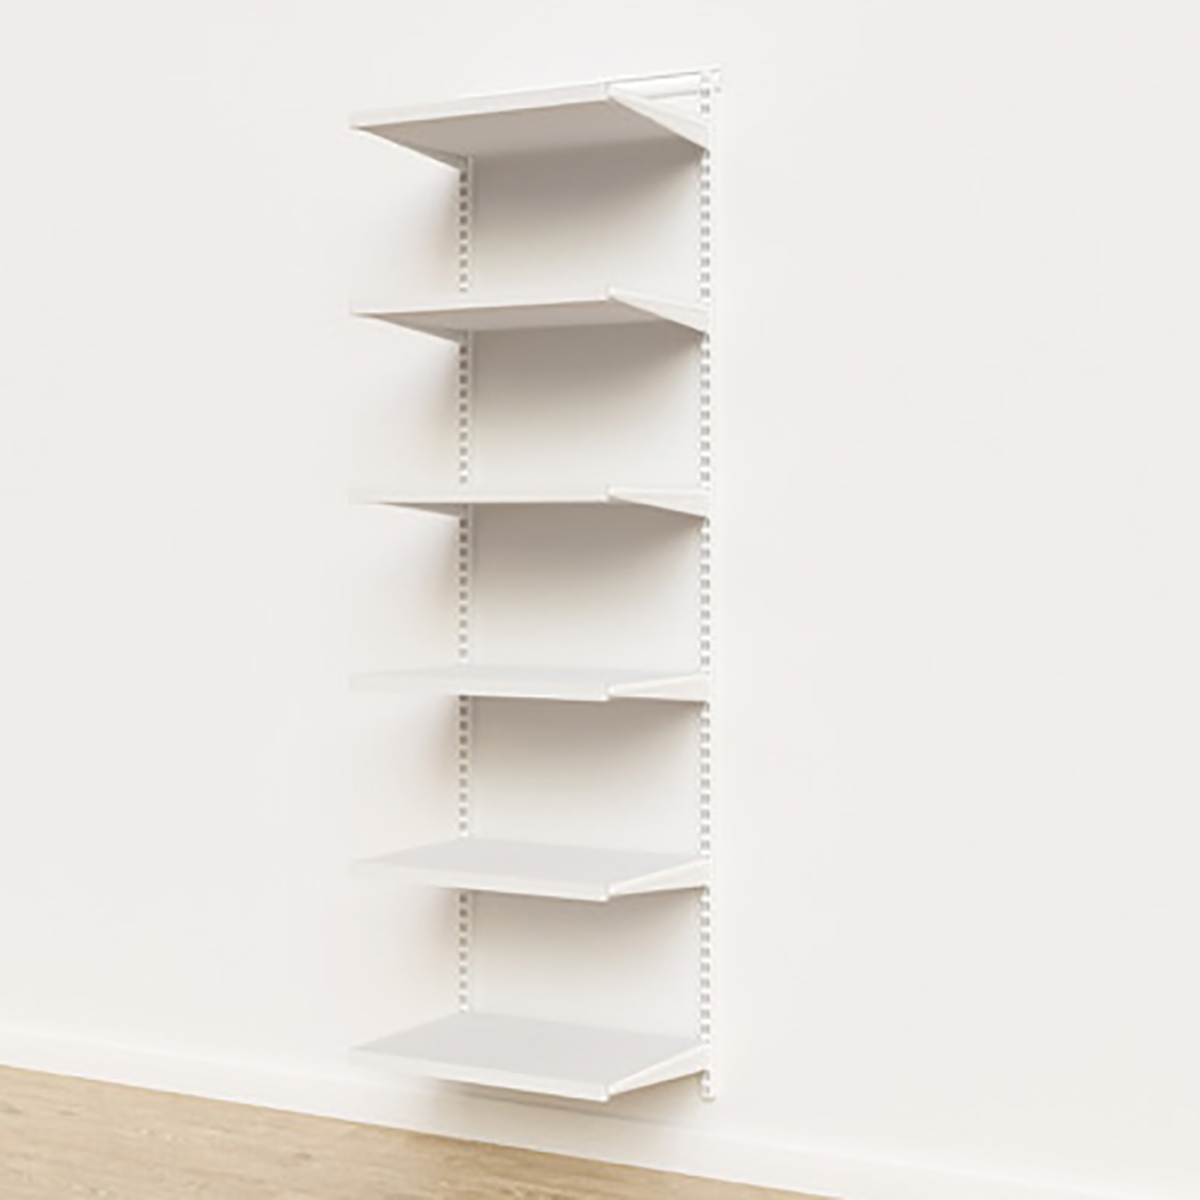 Elfa Décor 2' White Basic Shelving Units for Anywhere